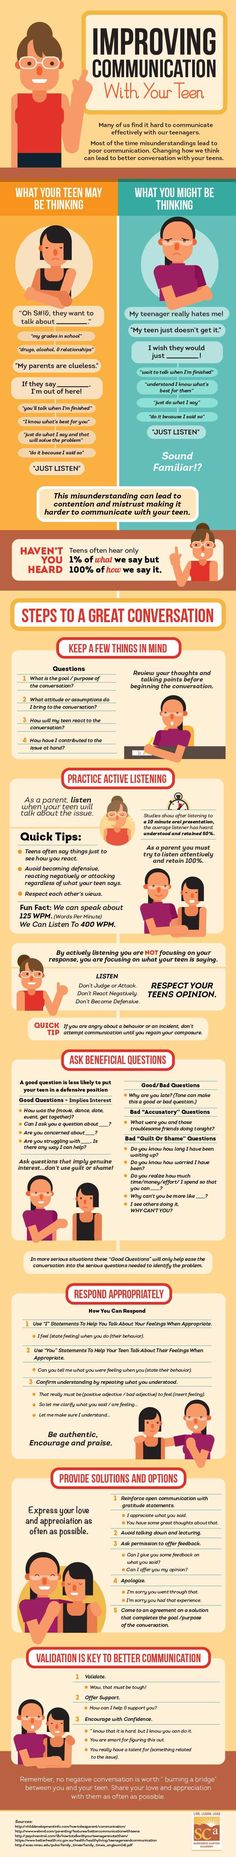 Improving Communication With Your Teen #Infographic #Communication #Teen